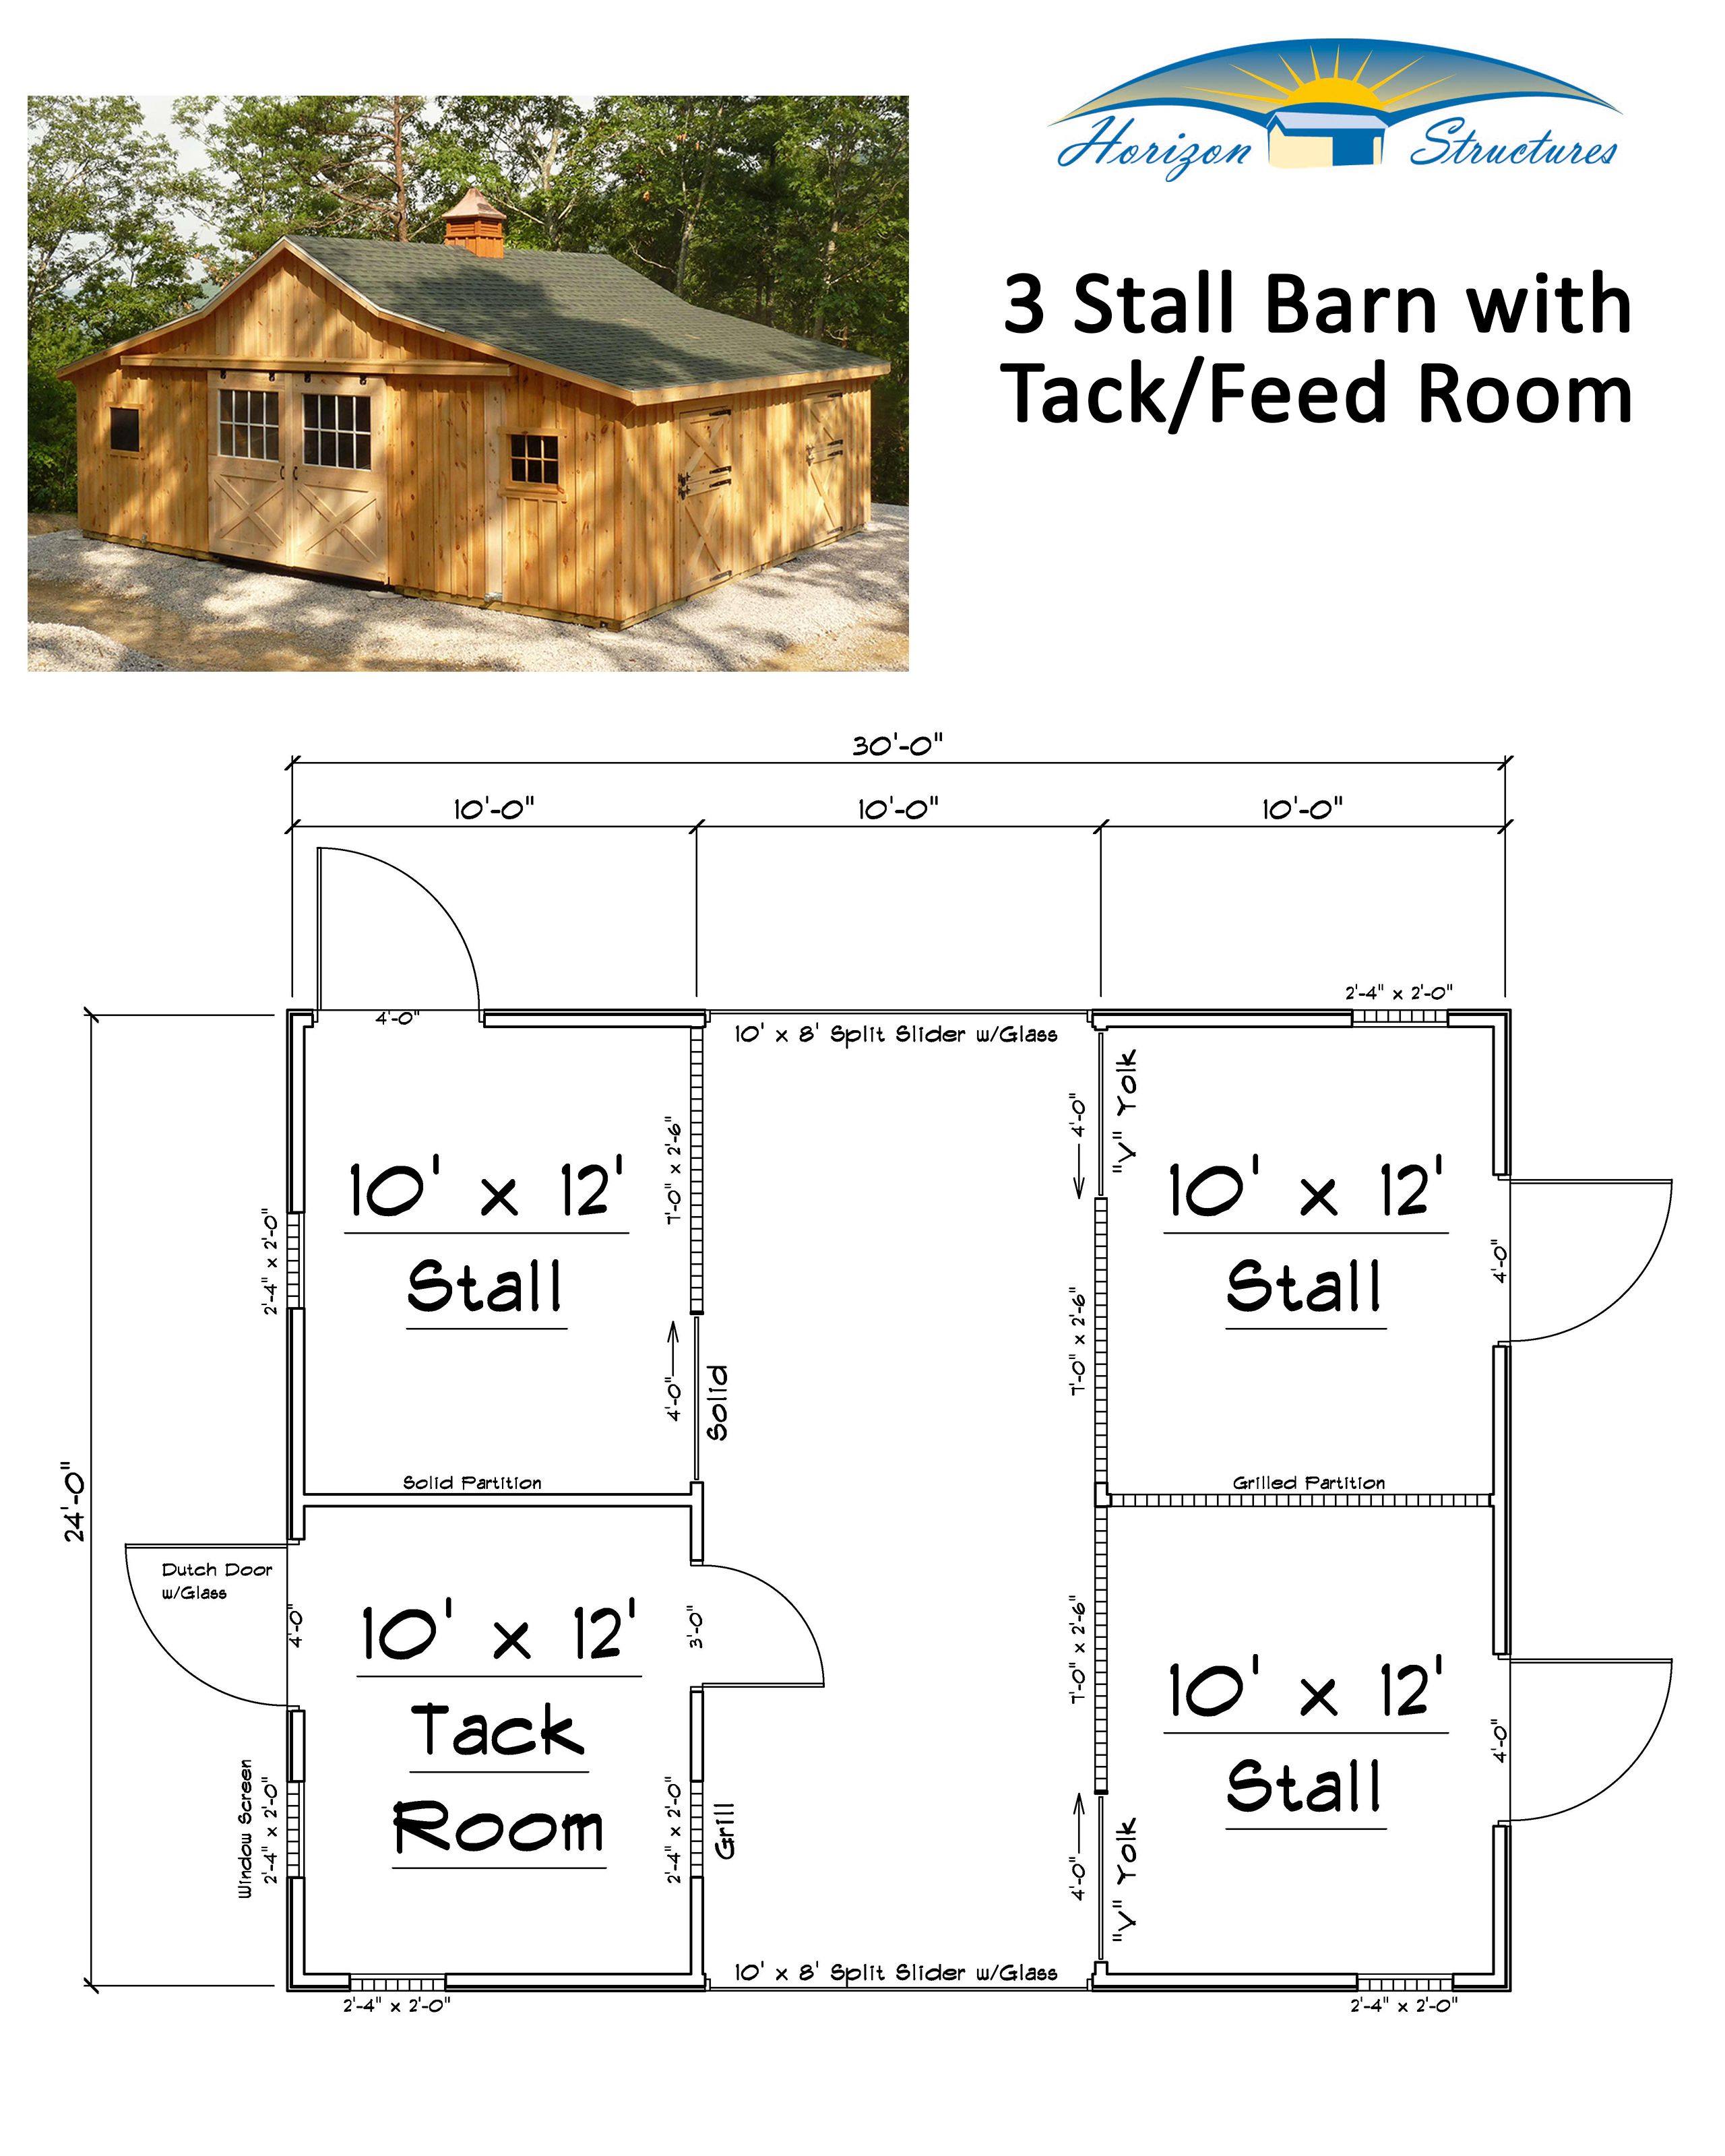 Charming 3 stall low profile raised center aisle modular for Two stall barn plans